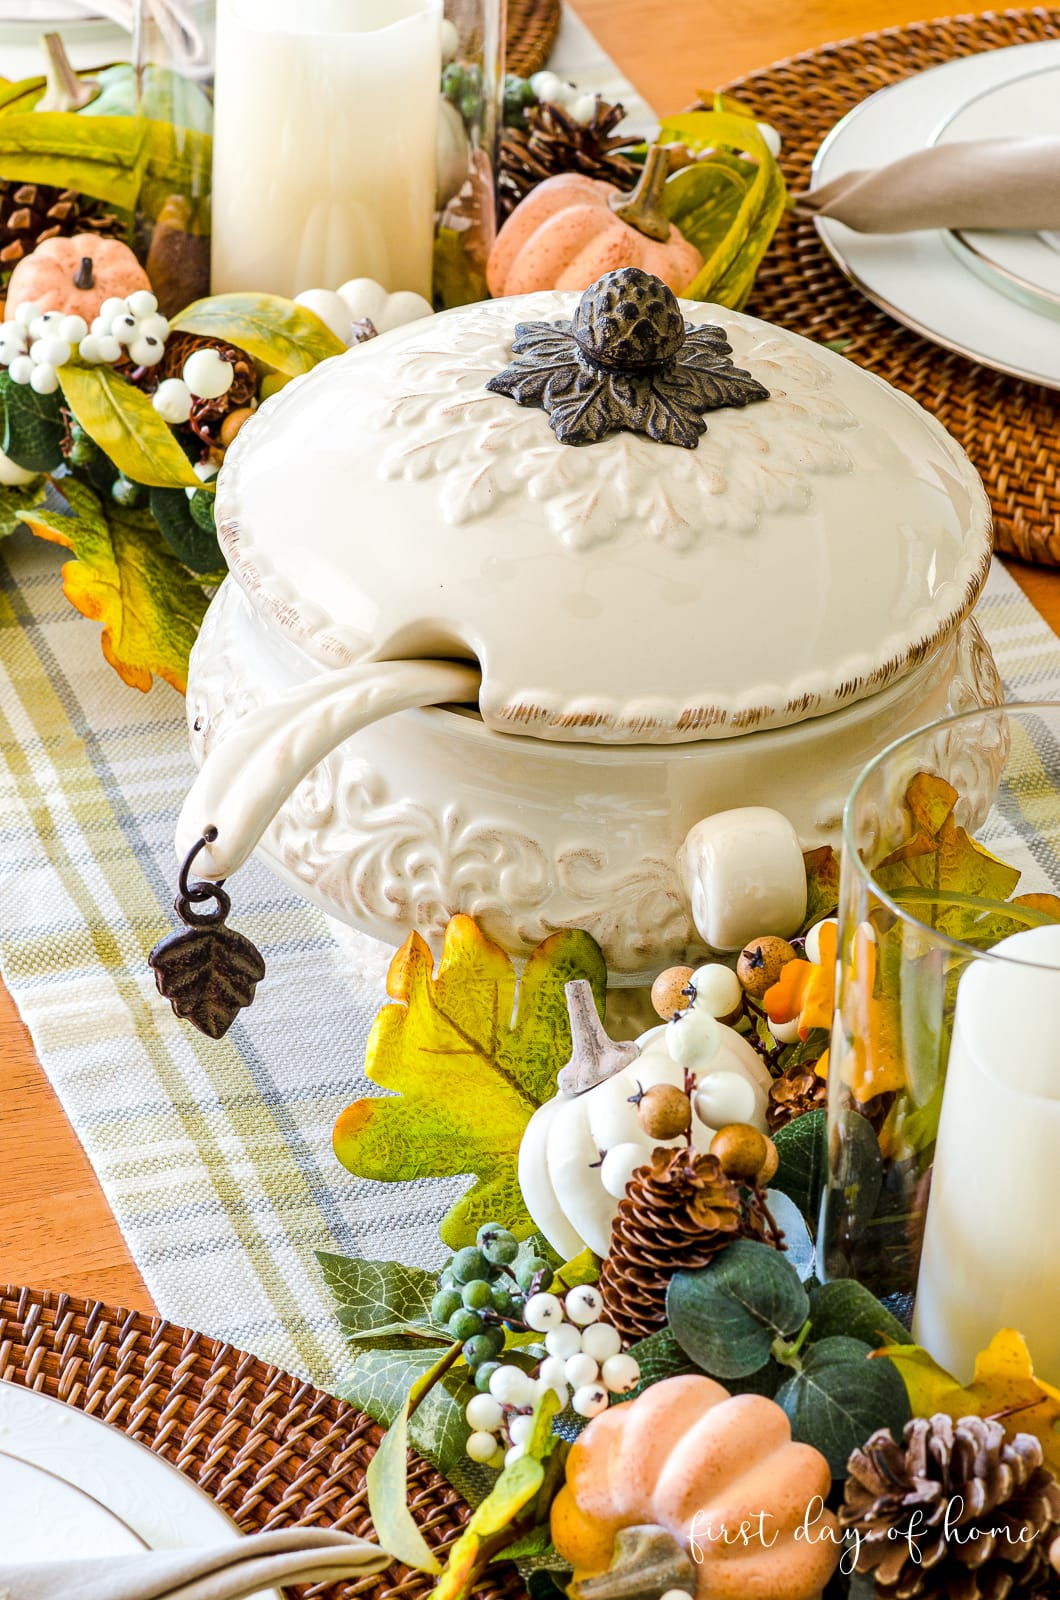 Gracious Goods soup tureen on fall tablescape